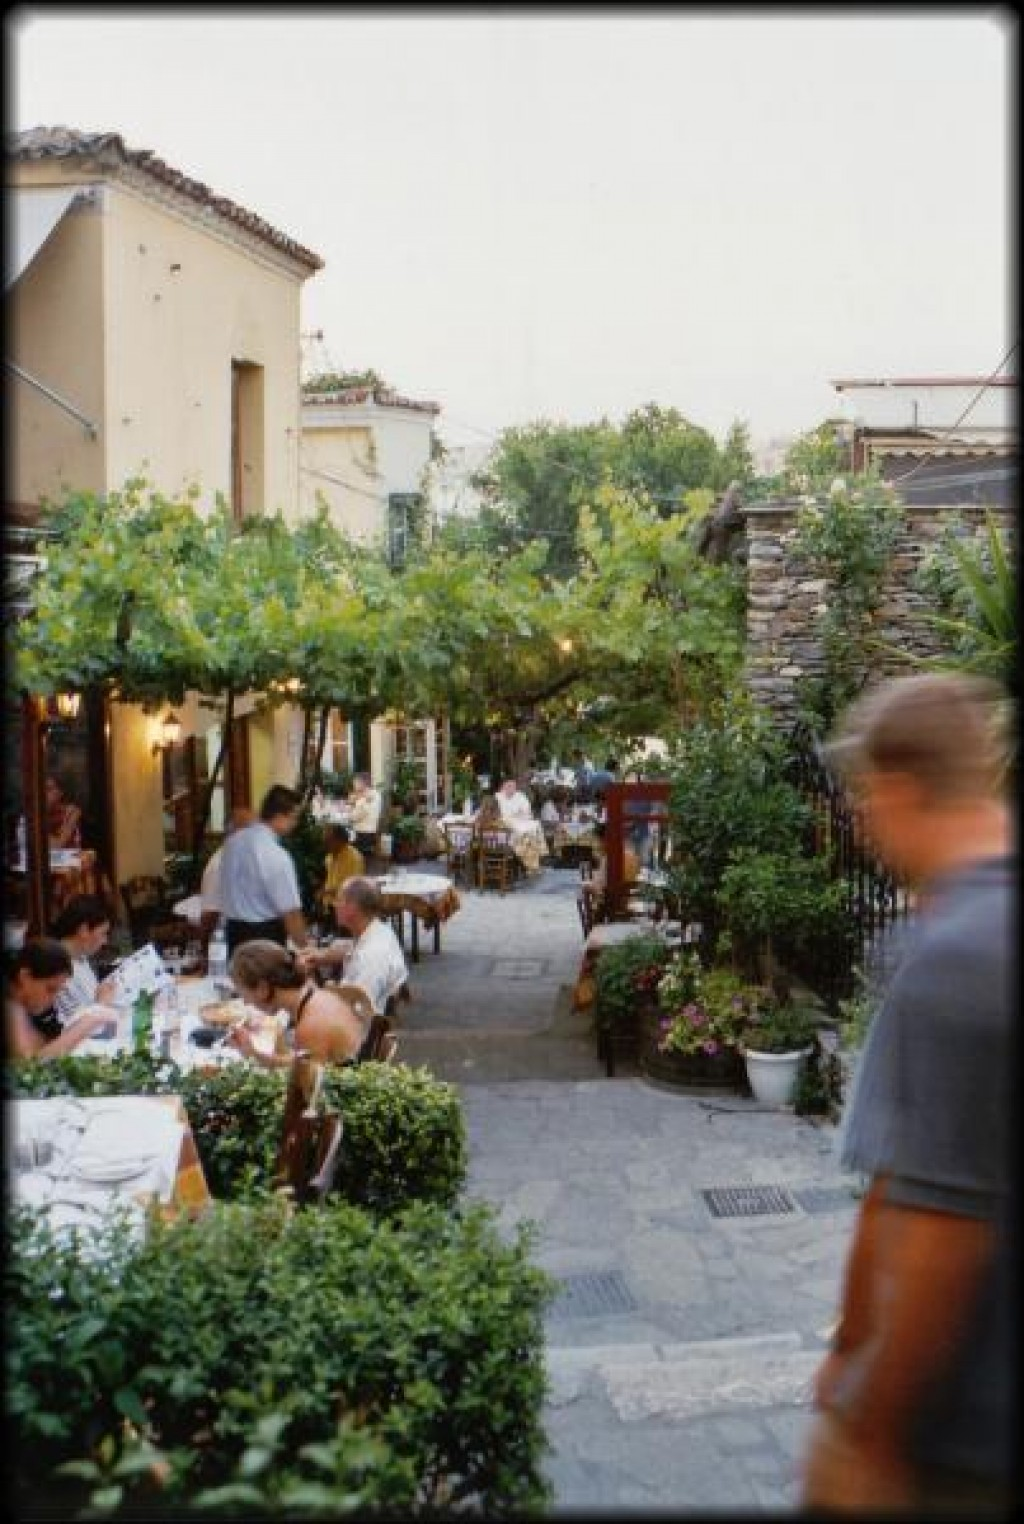 The Plaka district is packed with outdoor cafes and restaurants, here is a look down one of the pedestrian streets.